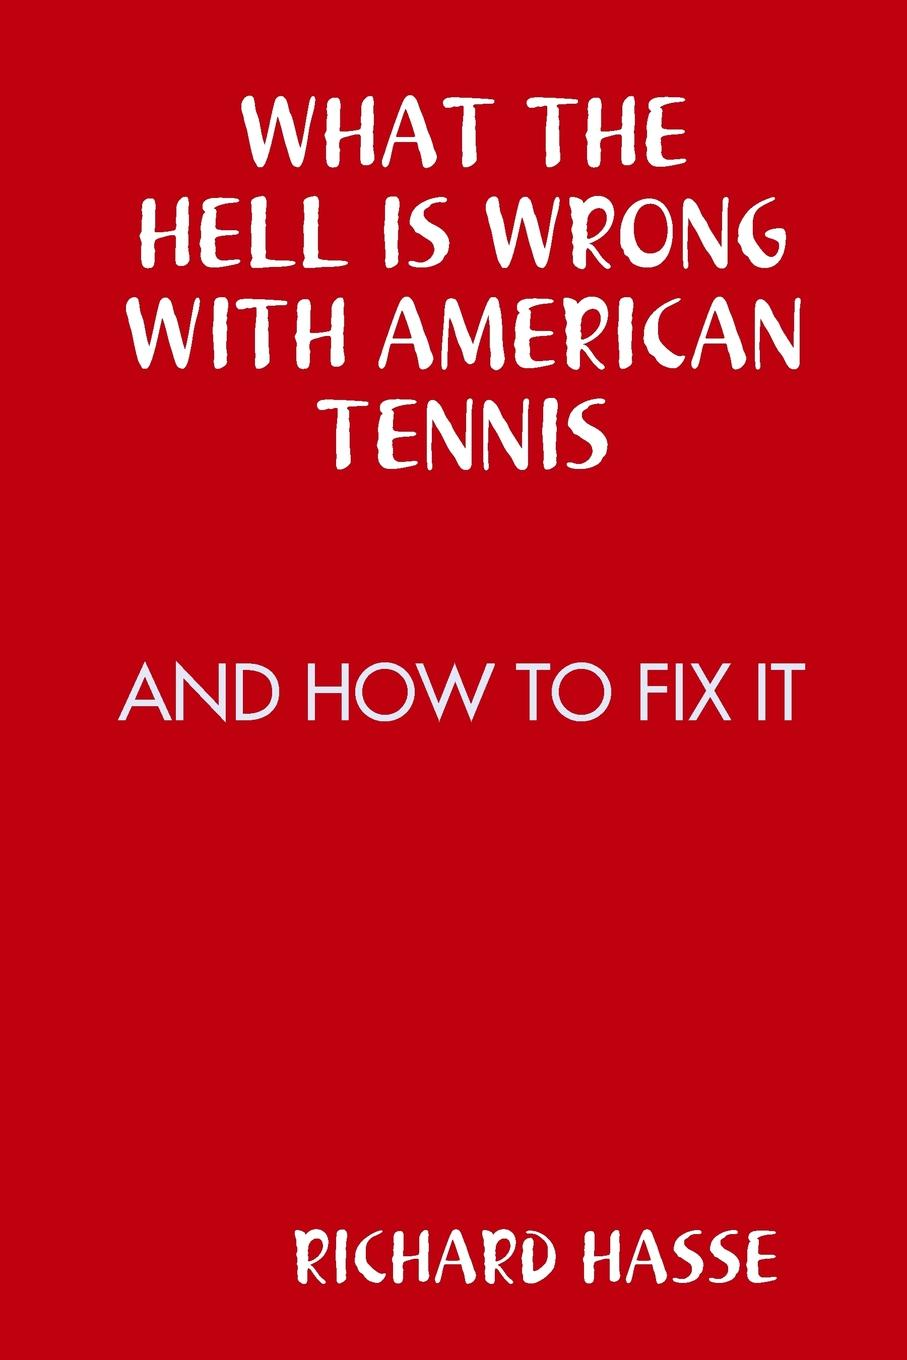 RICHARD HASSE WHAT THE HELL IS WRONG WITH AMERICAN TENNIS